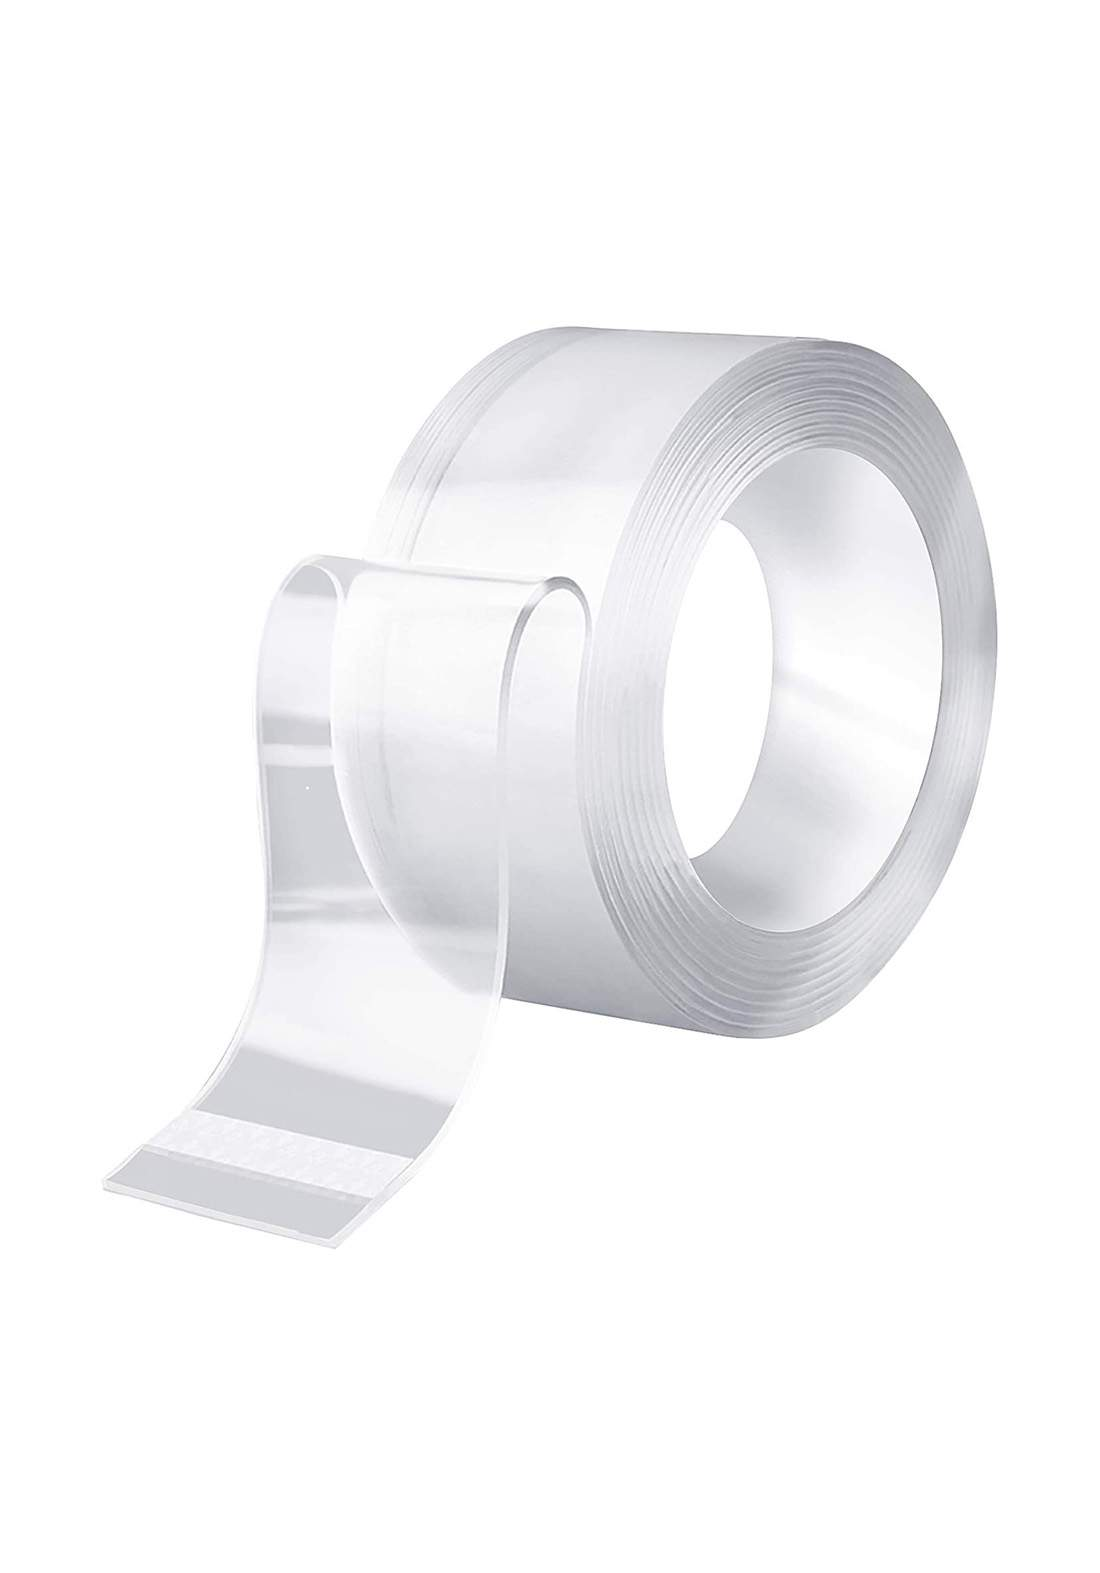 Double Sided Removable Nano Adhesive Tape 3m شريط لاصق